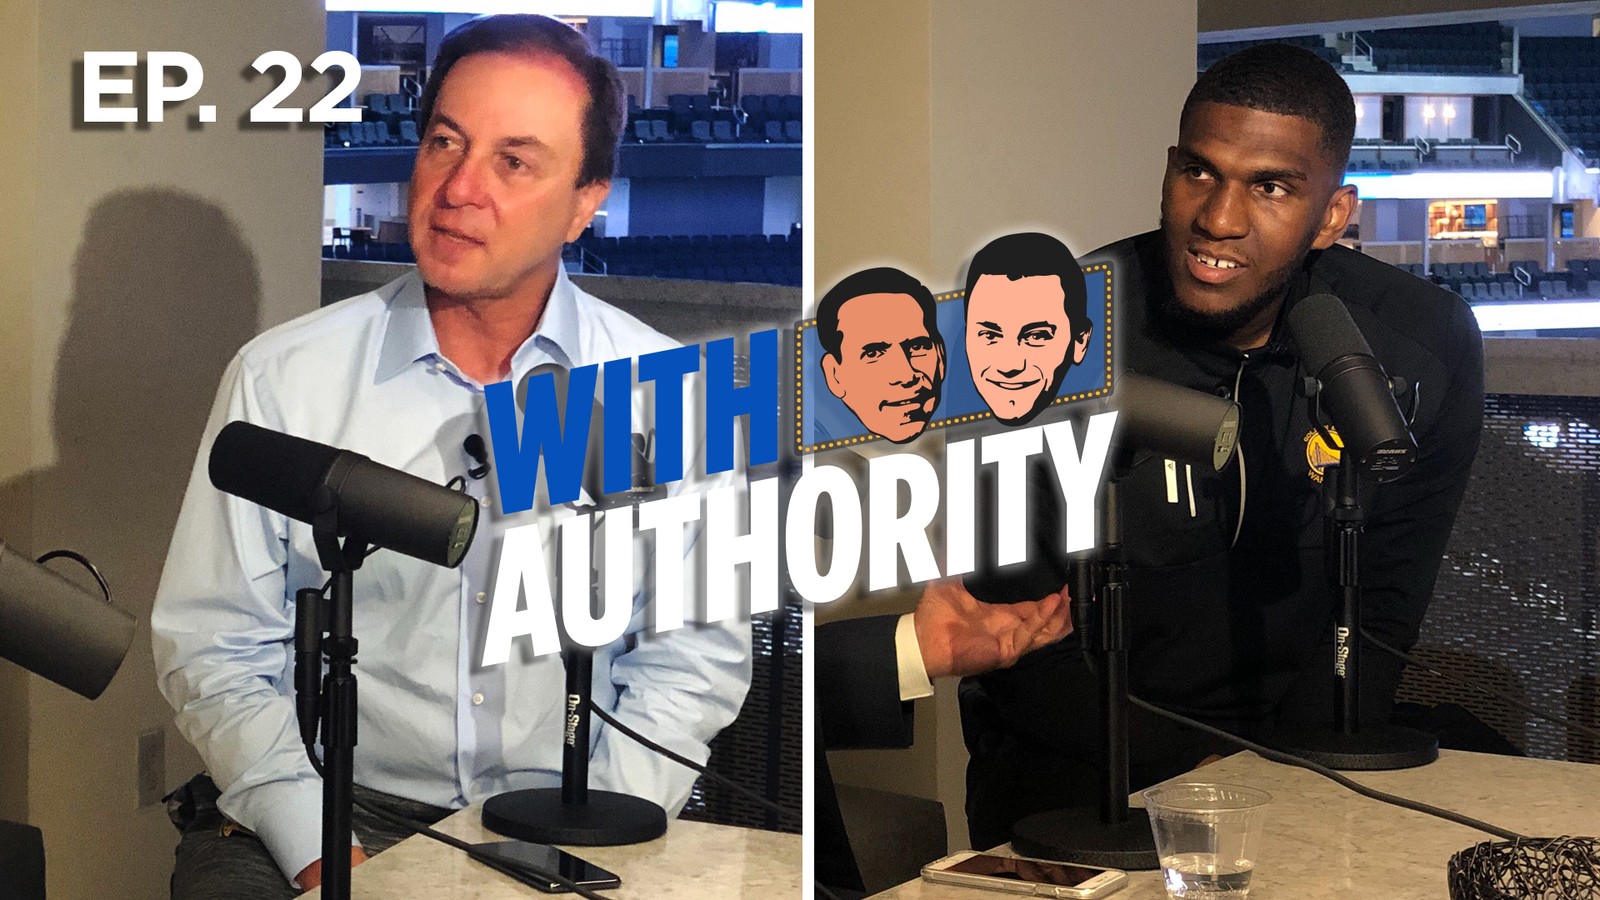 With Authority: One-on-one with Joe Lacob and Kevon Looney of the Warriors